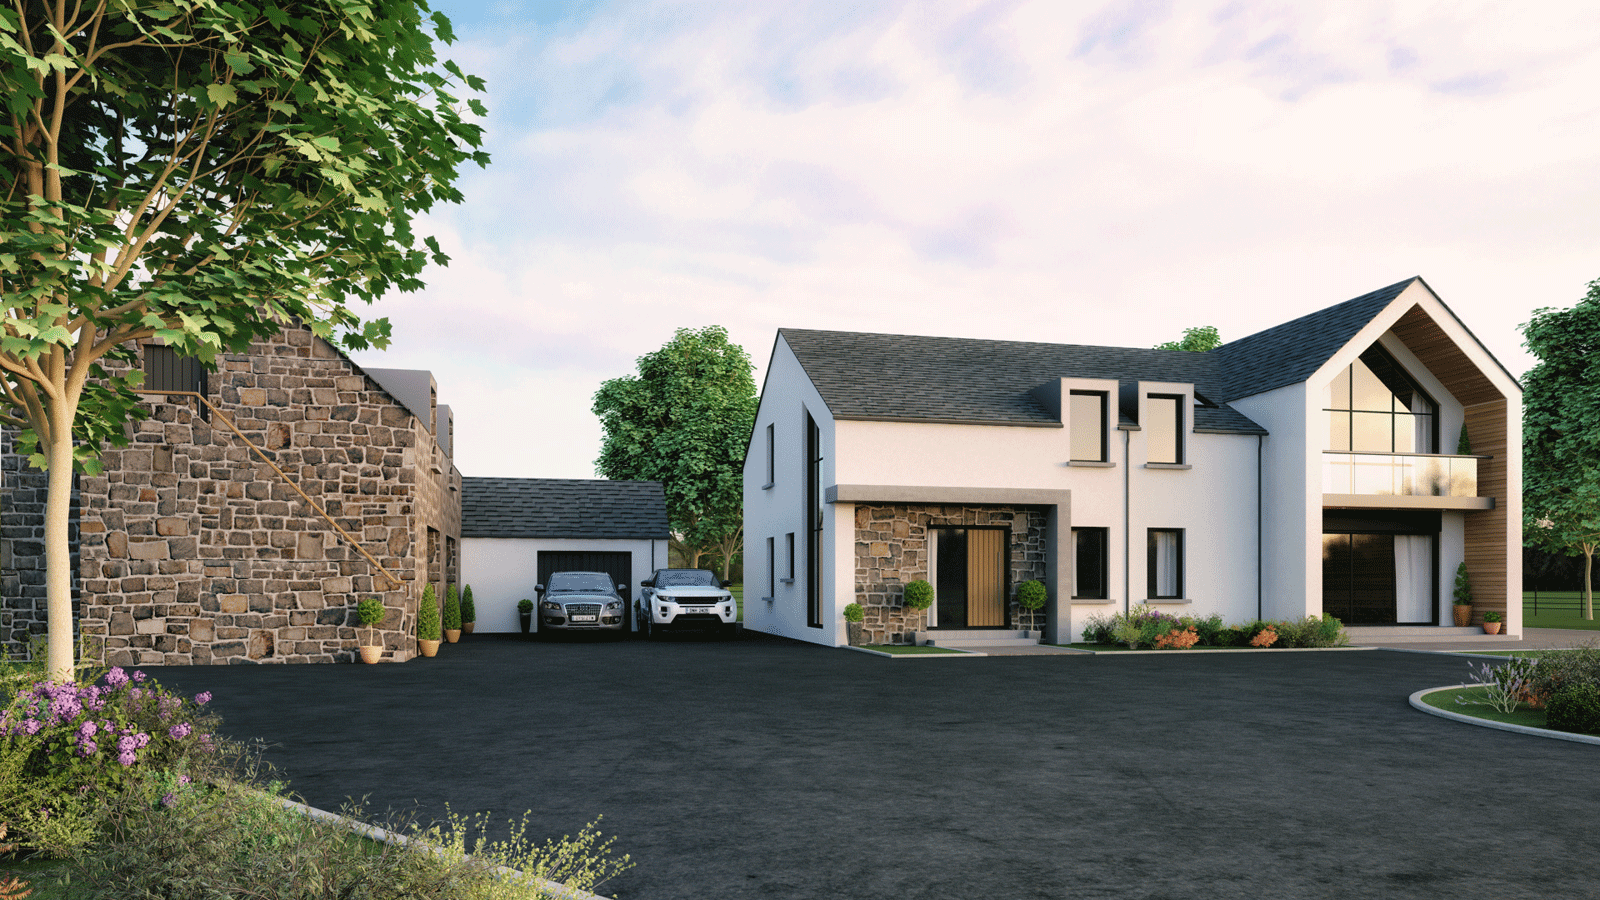 Northern ireland contemporary self builds google search Contemporary house designs uk